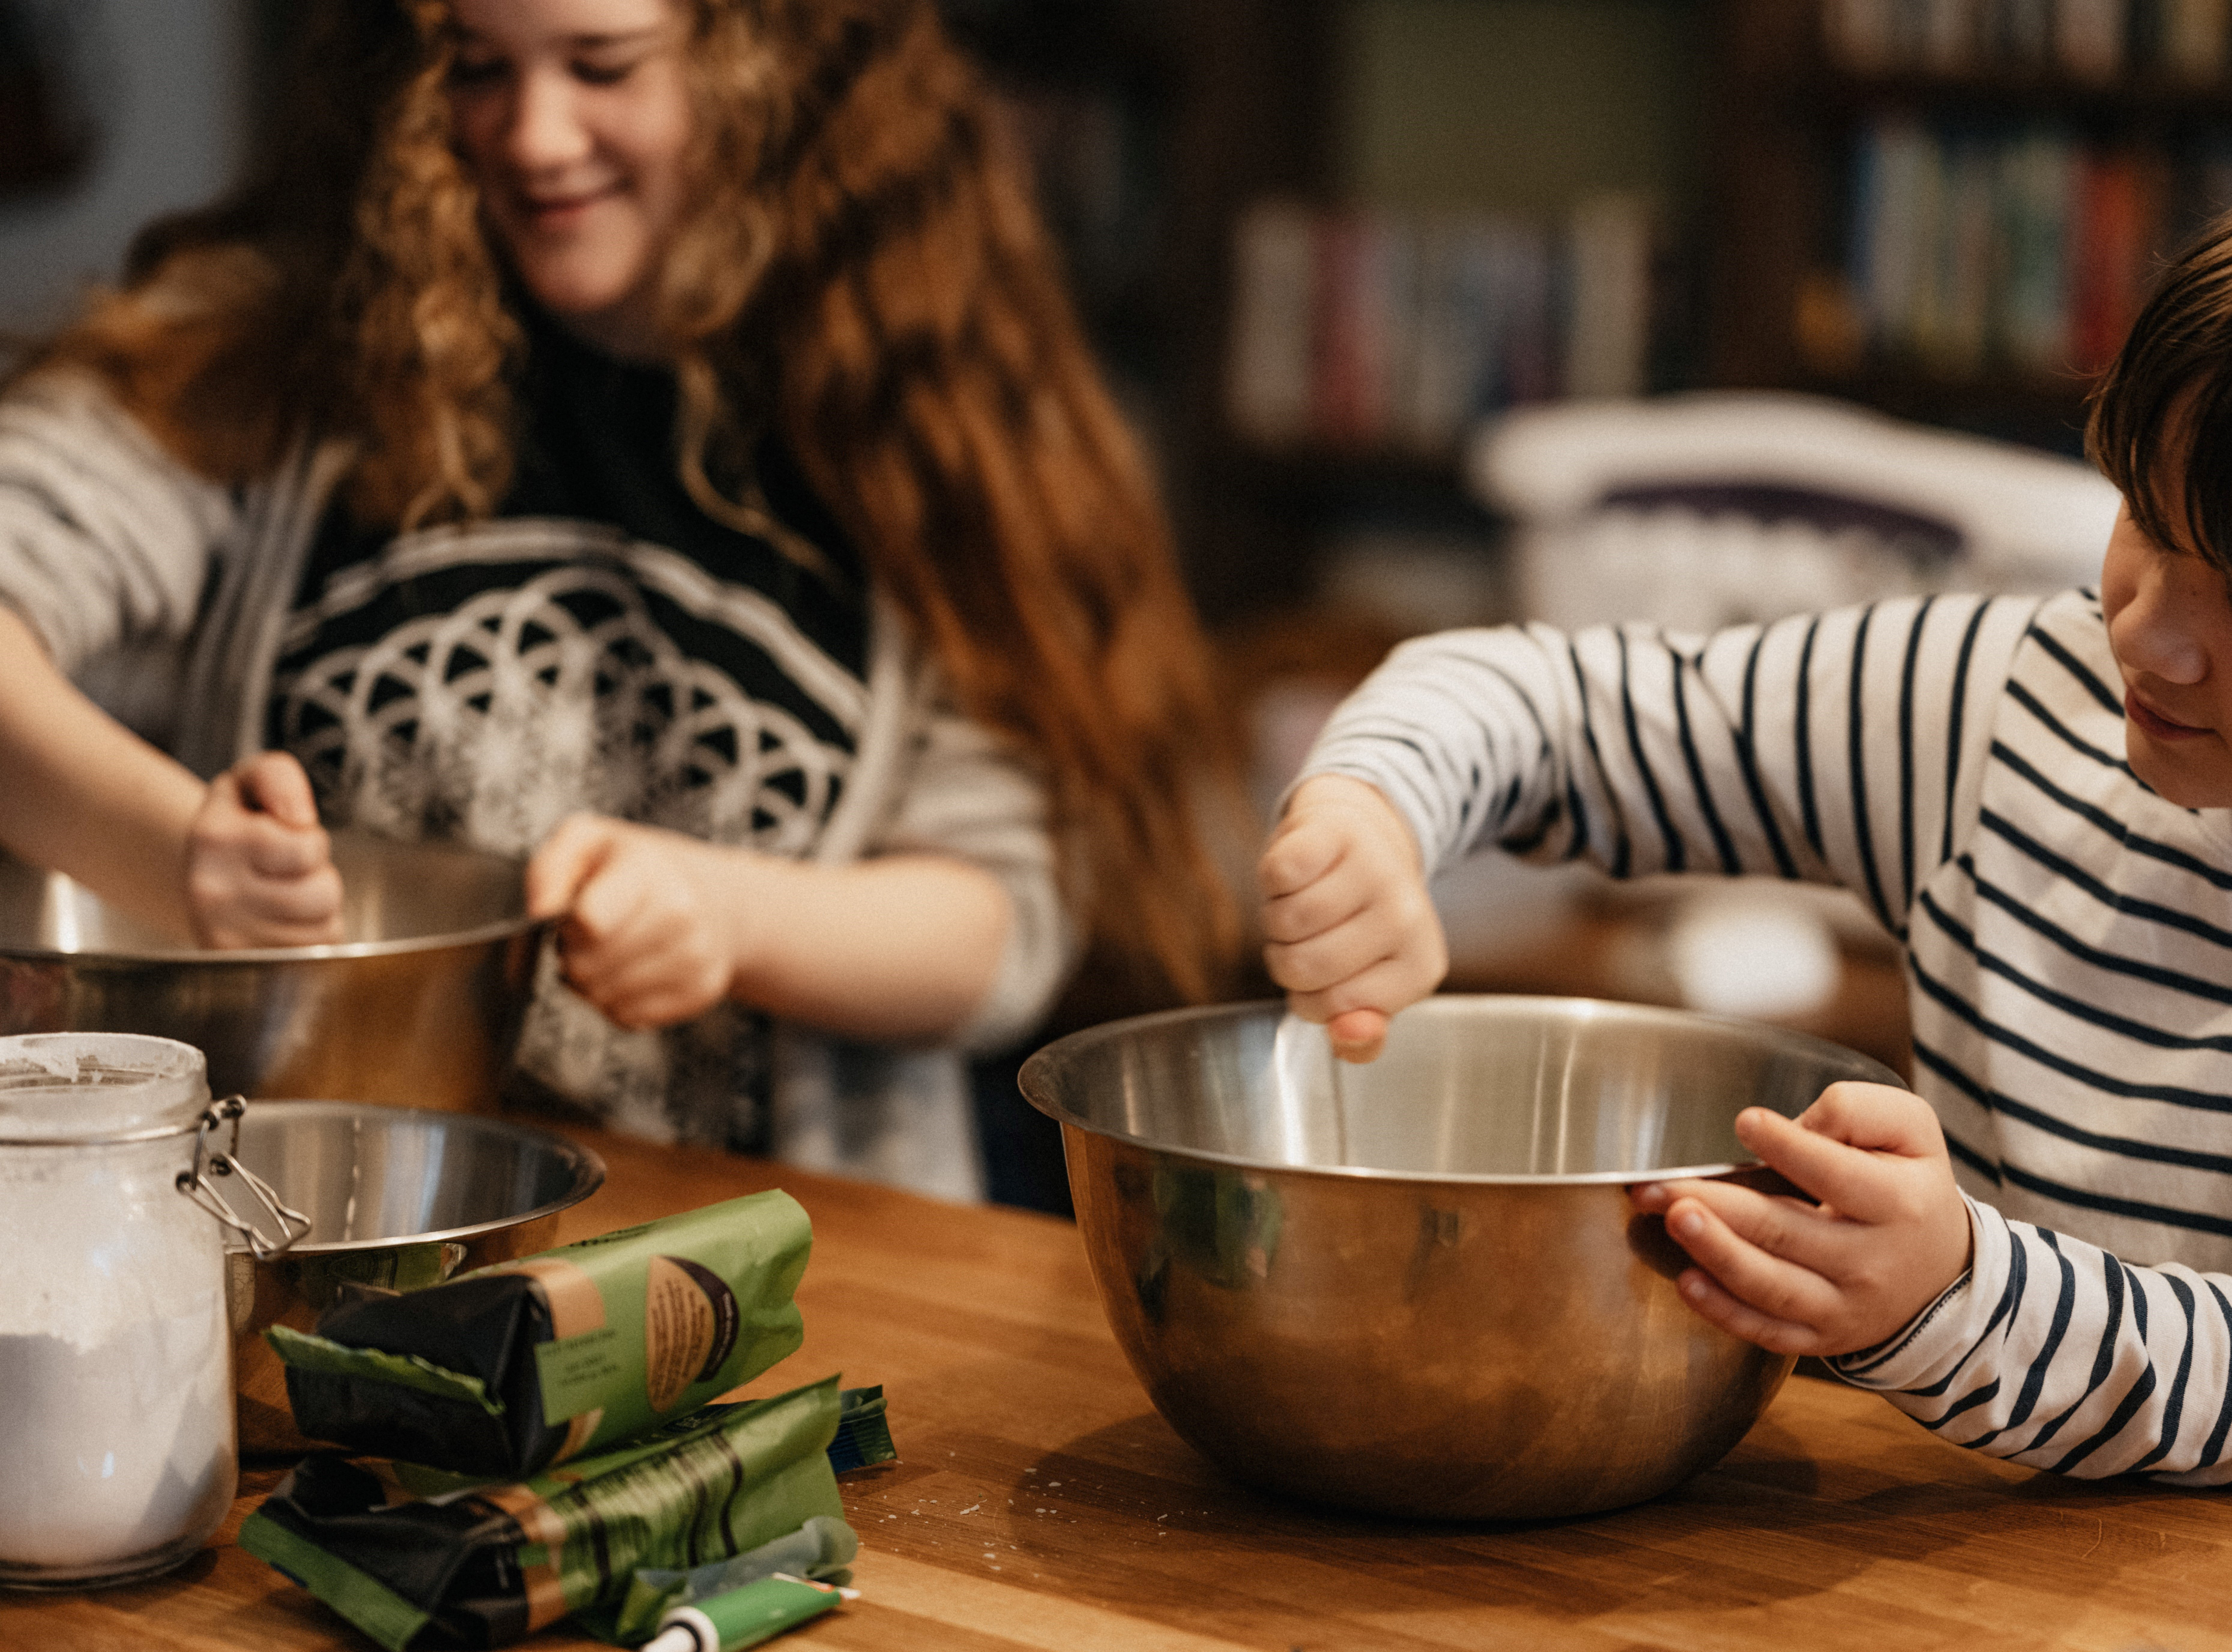 My children Jimmy and Jessy cooking together.   Source: Unsplash